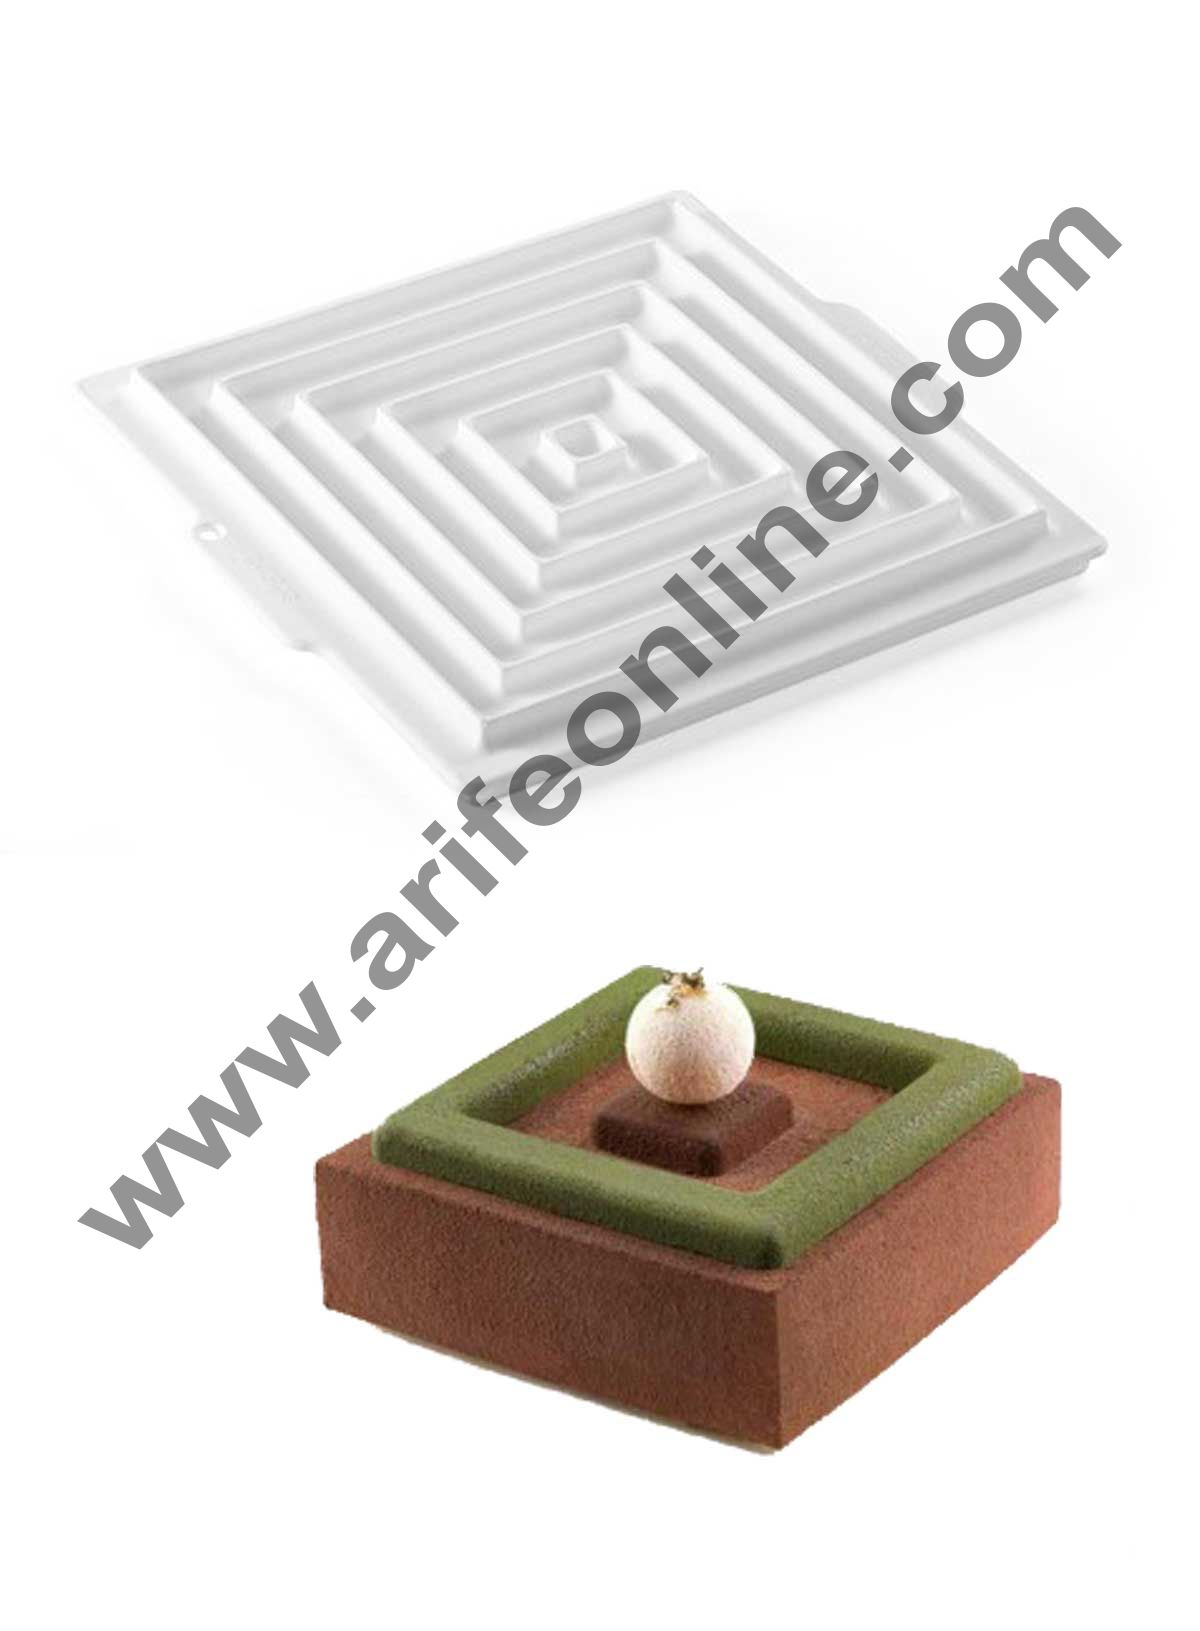 Cake Decor Silicon Double Square Round Insert Decor Design Cake Mould Mousse Cake Mould Silicon Moulds